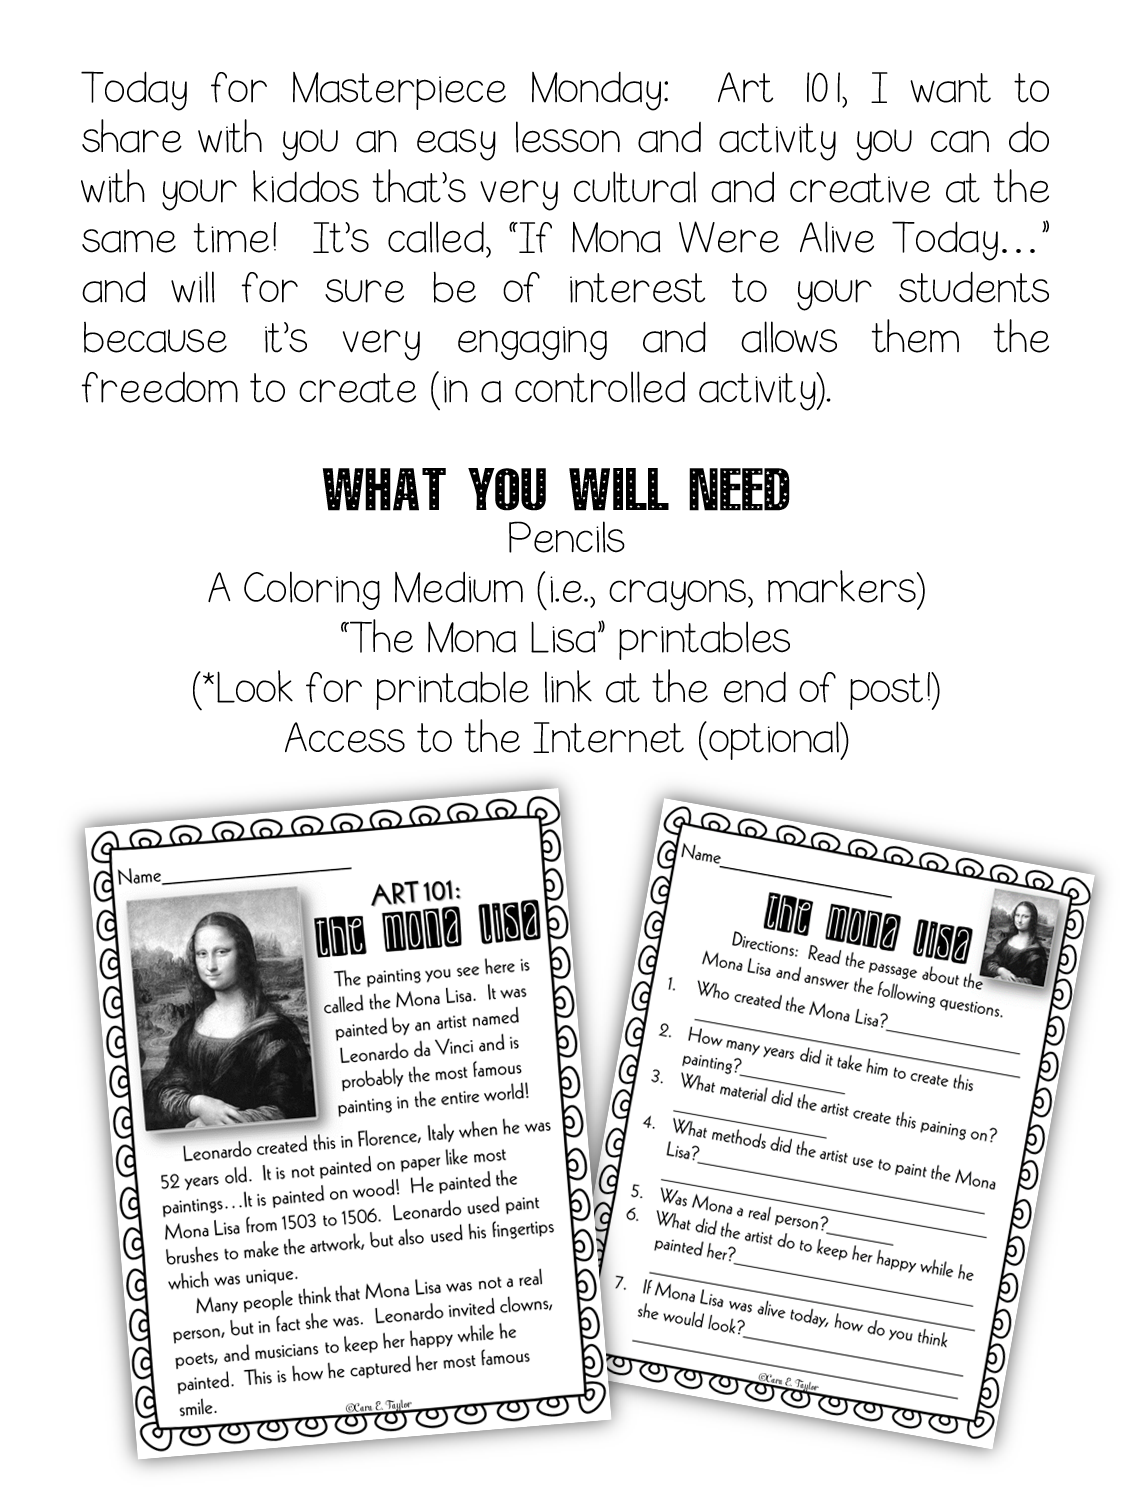 worksheet Is It Alive Worksheet masterpiece monday art 101 if mona lisa were alive today and creative playground today